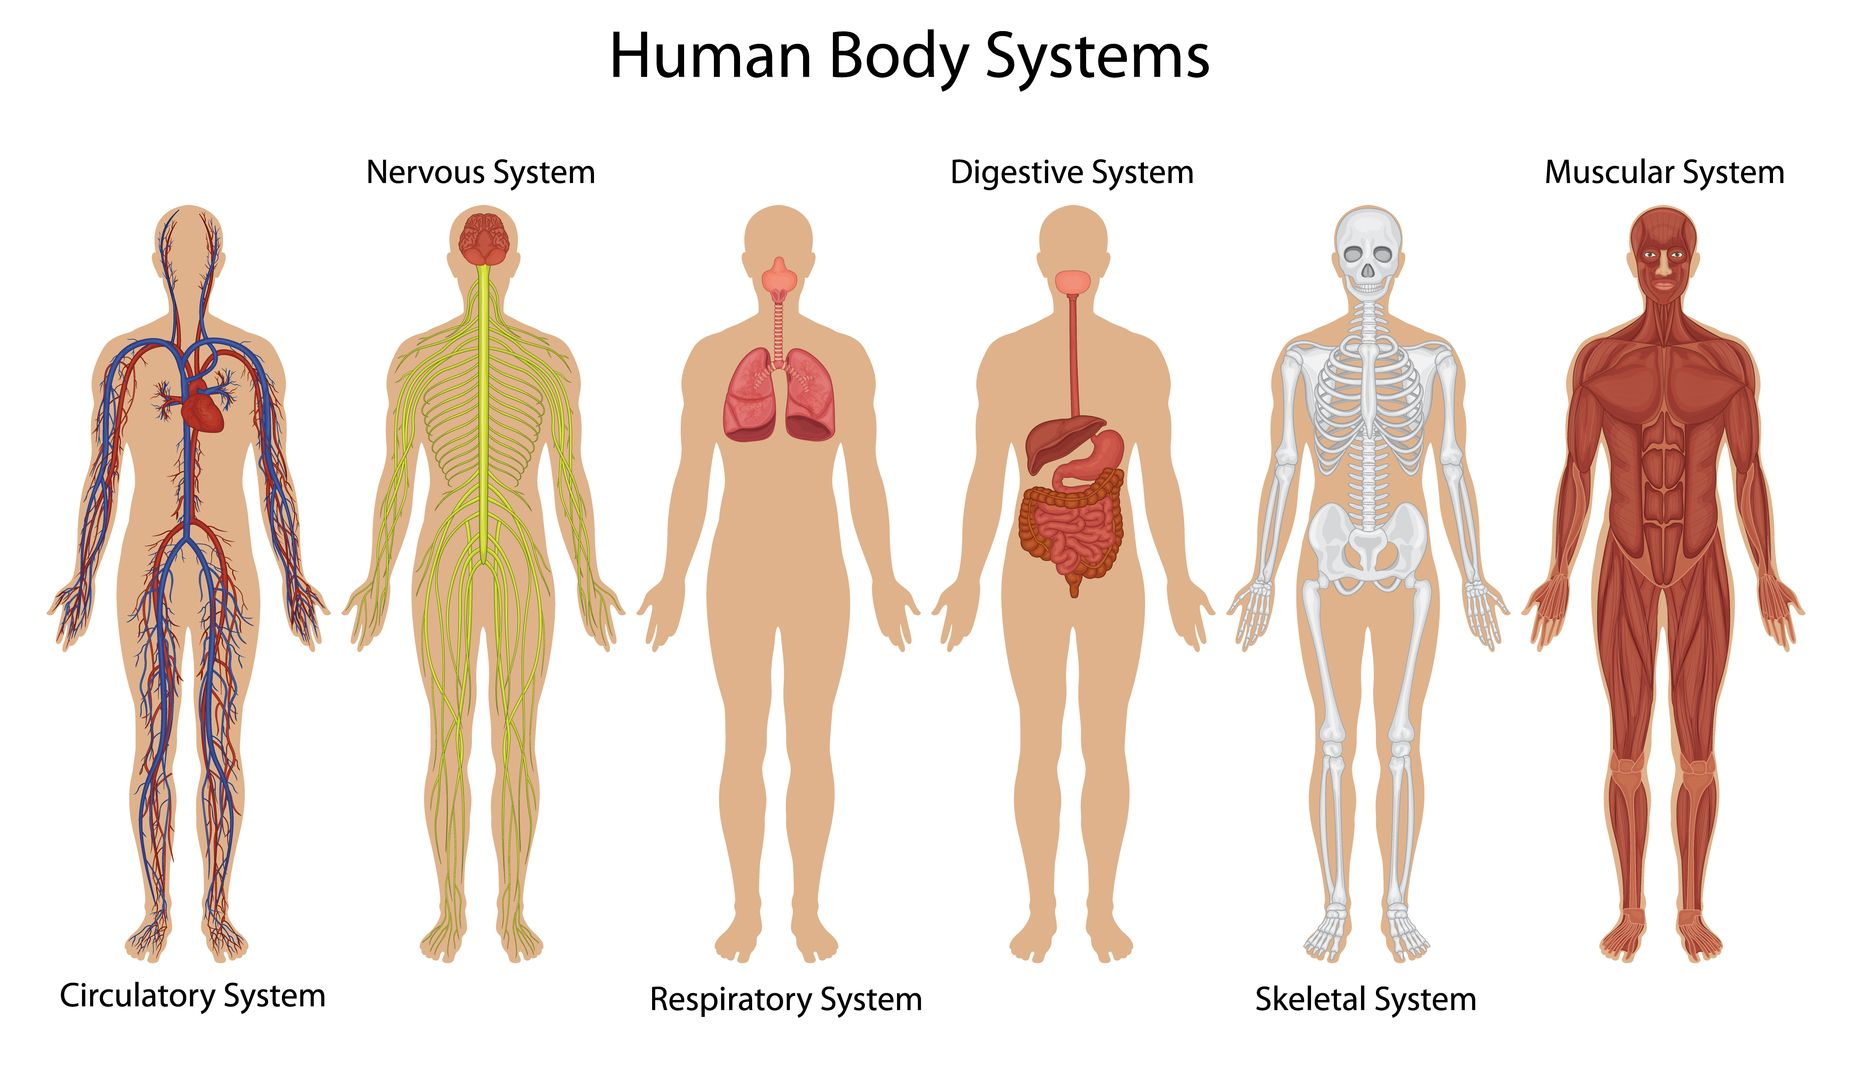 Christian Chasing The Wind Muscle Diagram Human Body Additionally Kids Circulatory System Habakkuk 3 7 Systems And Organs